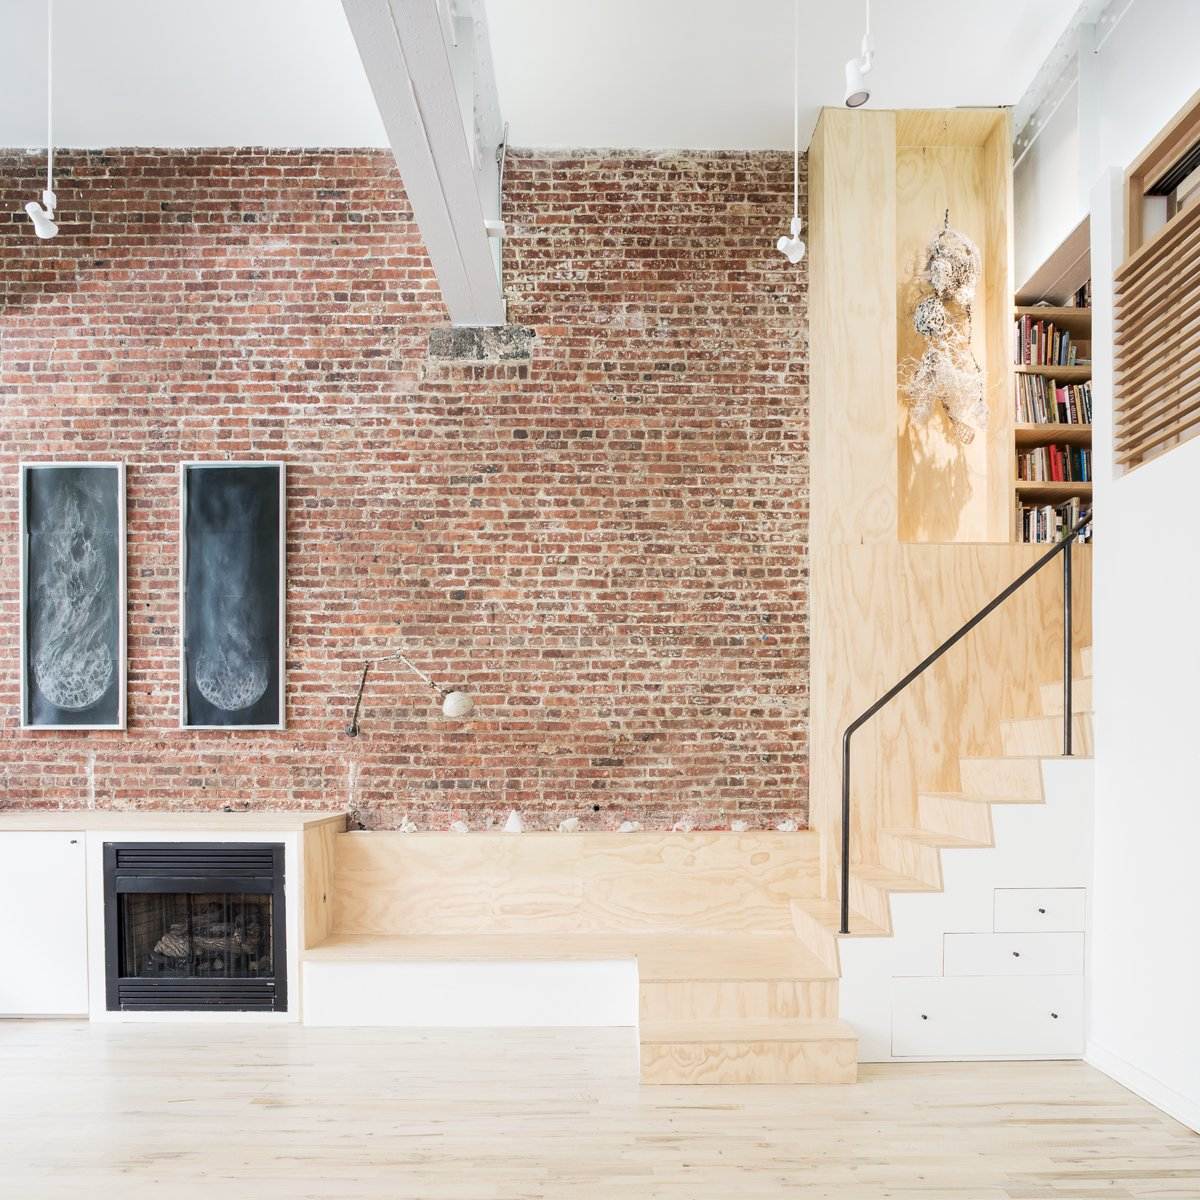 Plywood stair and bench seat adjacent to fireplace Tagged: Living Room, Track Lighting, Bench, Accent Lighting, Light Hardwood Floor, and Standard Layout Fireplace.  Wells Fargo Loft by Jeff Jordan Architects